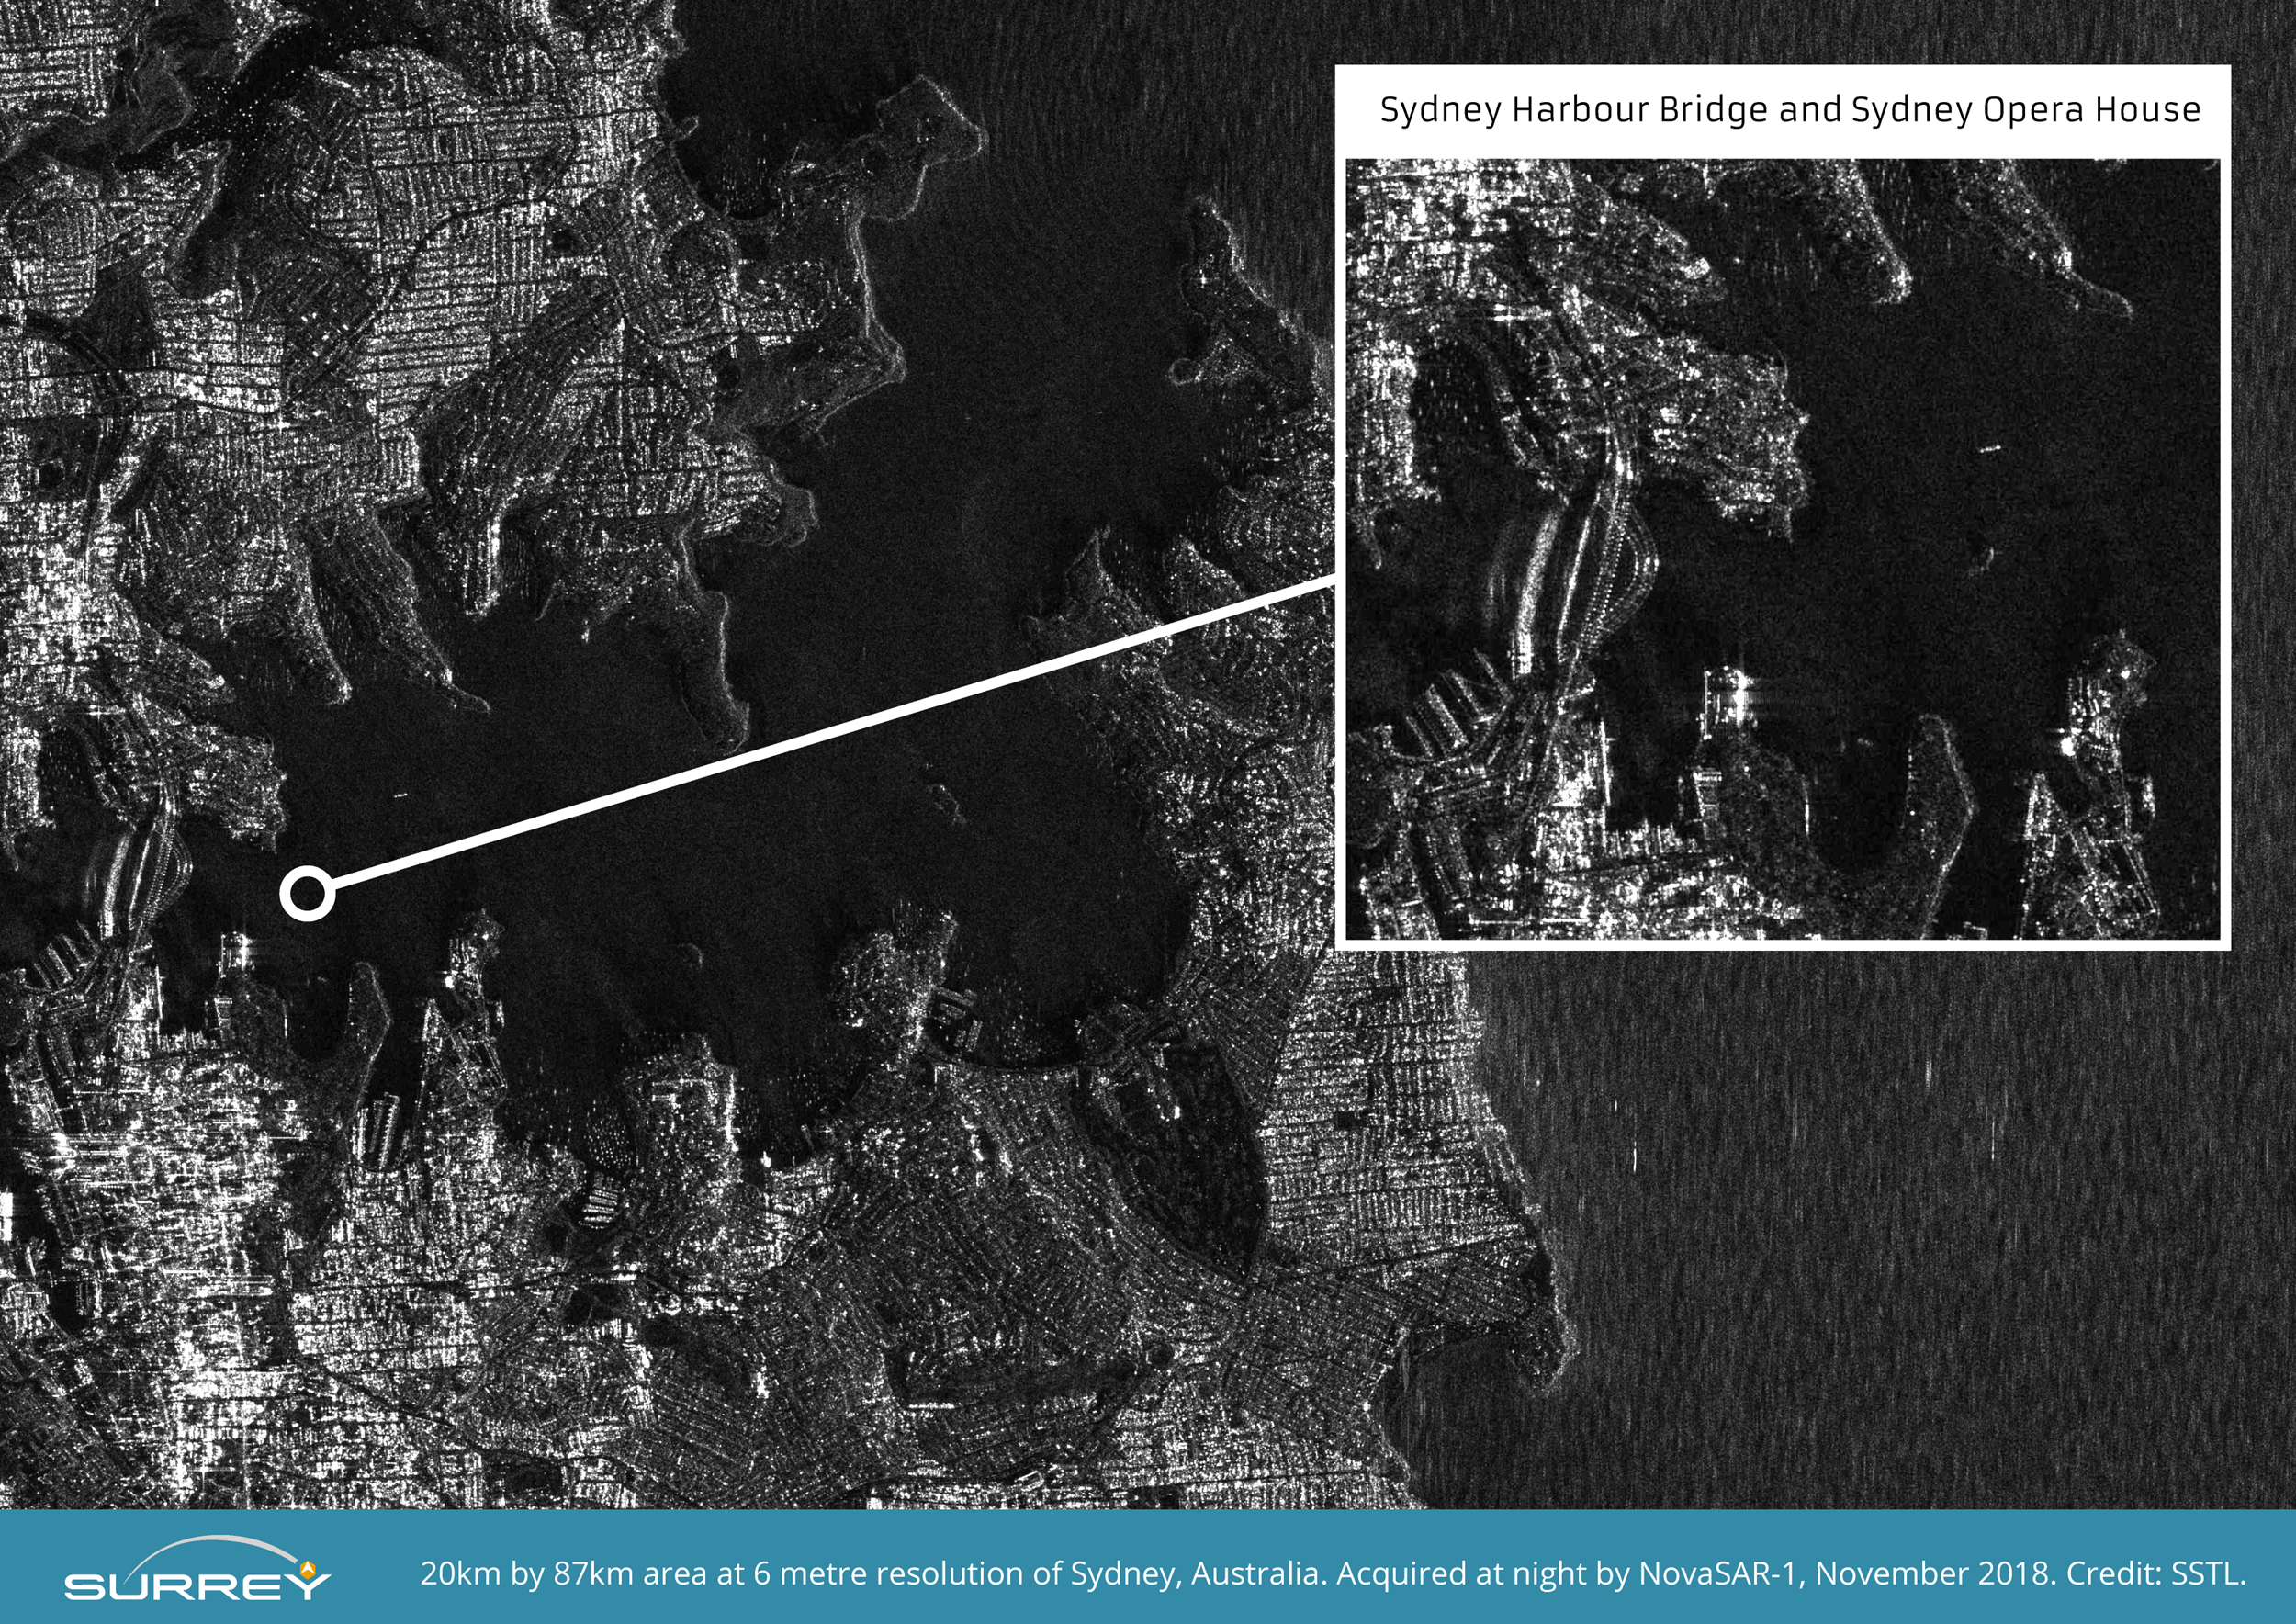 NovaSAR-1 S-Band Radar image of Sydney Harbour taken at night at 6 metre resolution. Image zoomed and compressed from original file.  Credit SSTL.